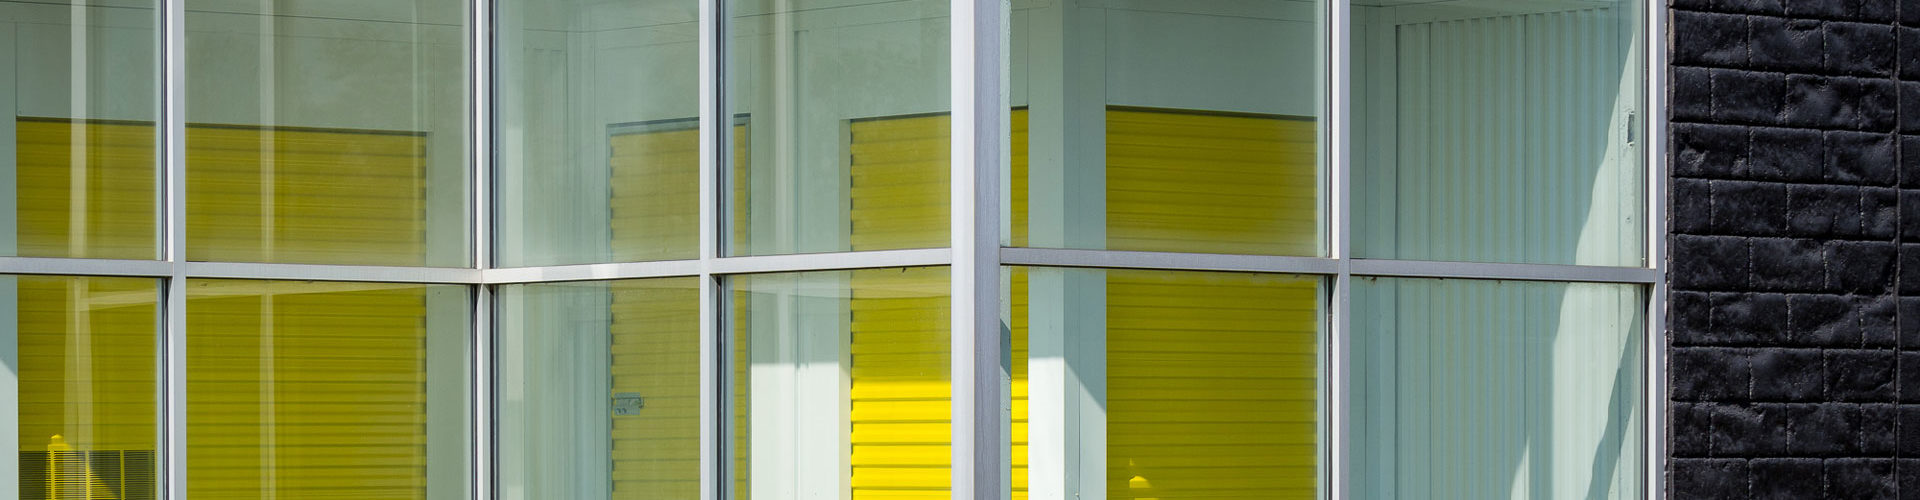 Different Types of Storage Units: How to Choose